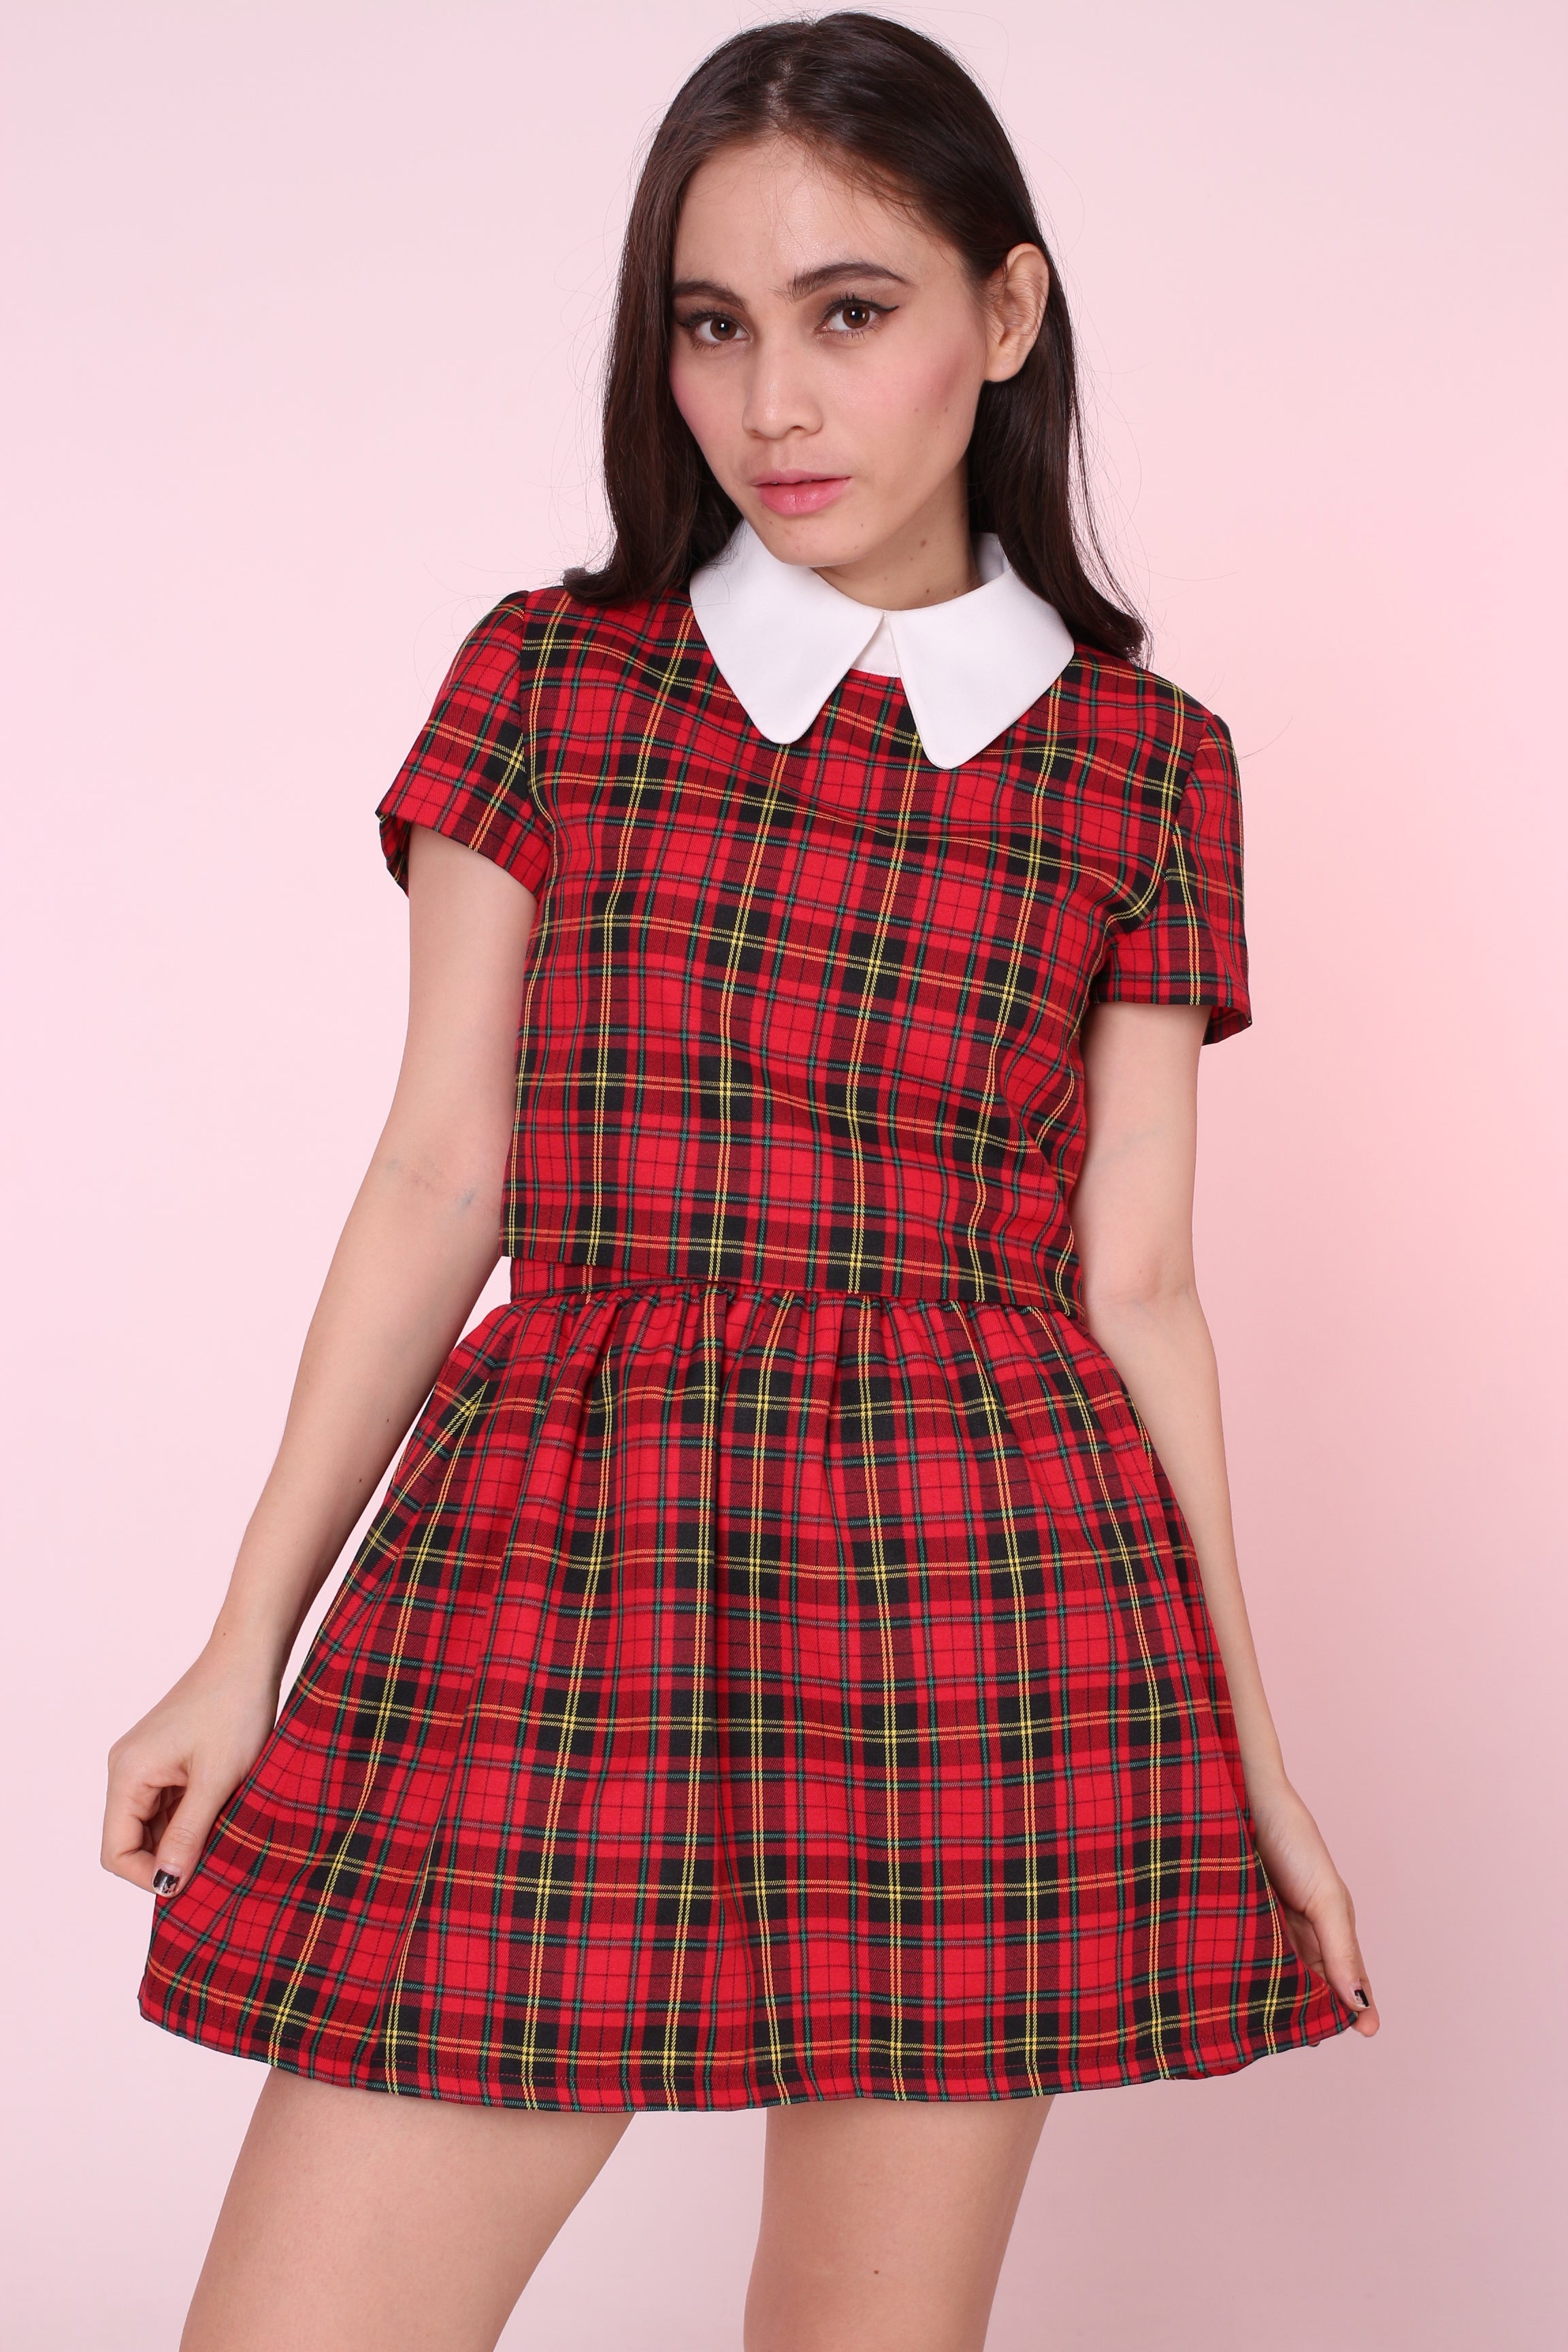 Glitters For Dinner u2014 MADE TO ORDER - Clueless Tartan Set in Red